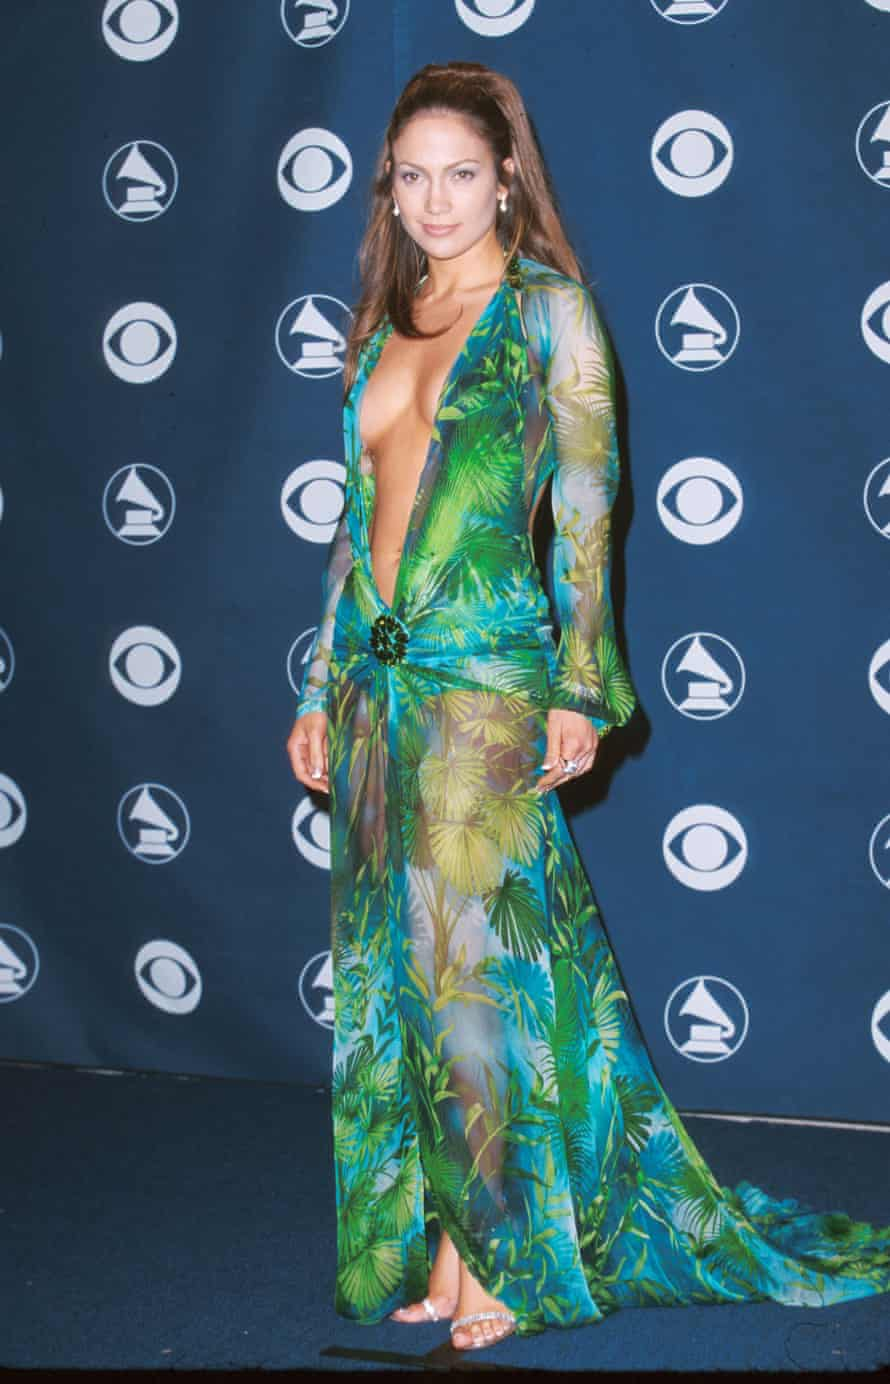 J Lo at the Grammys in 2000